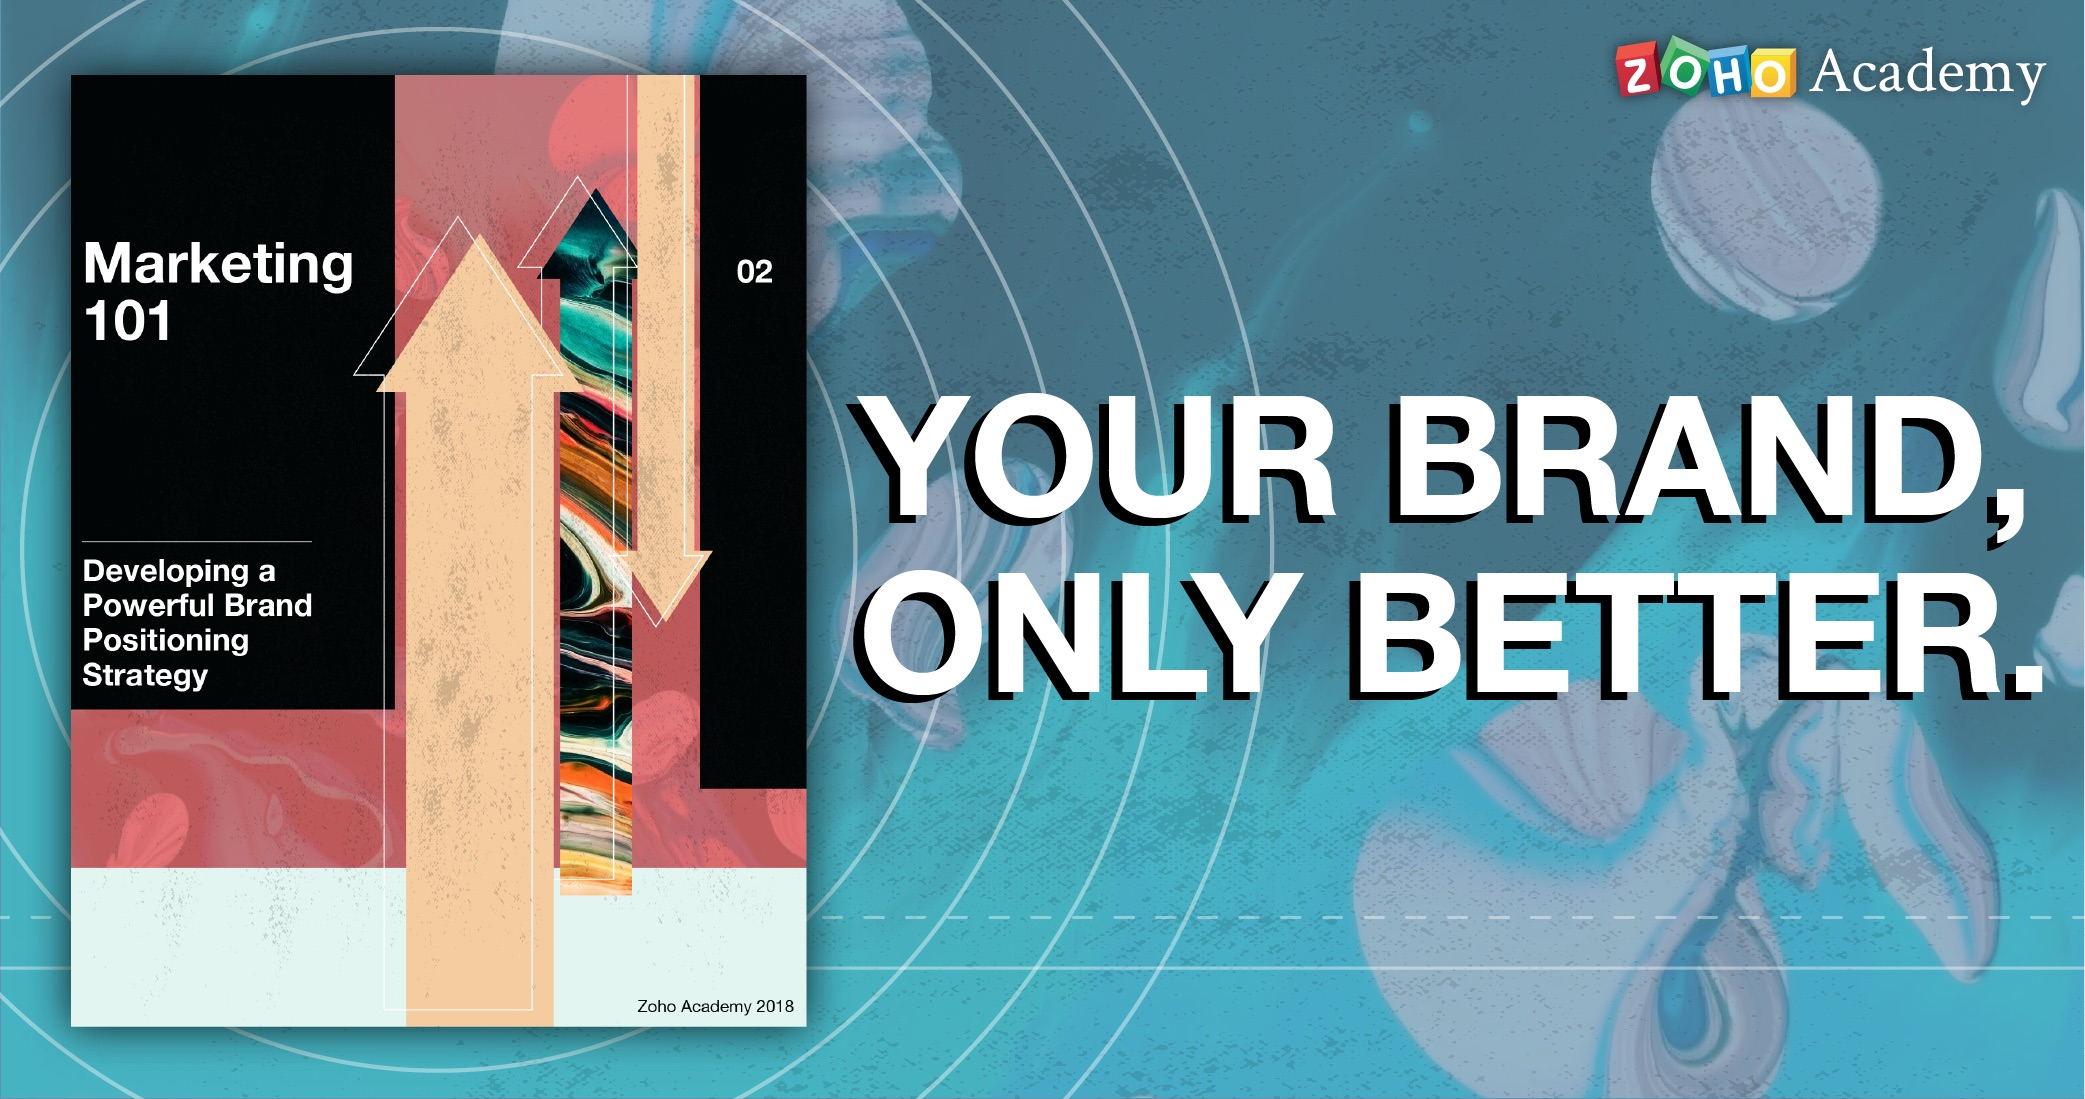 Zoho Academy's Newest Ebook is Up… and it Wants to Help You Position Your Brand Better